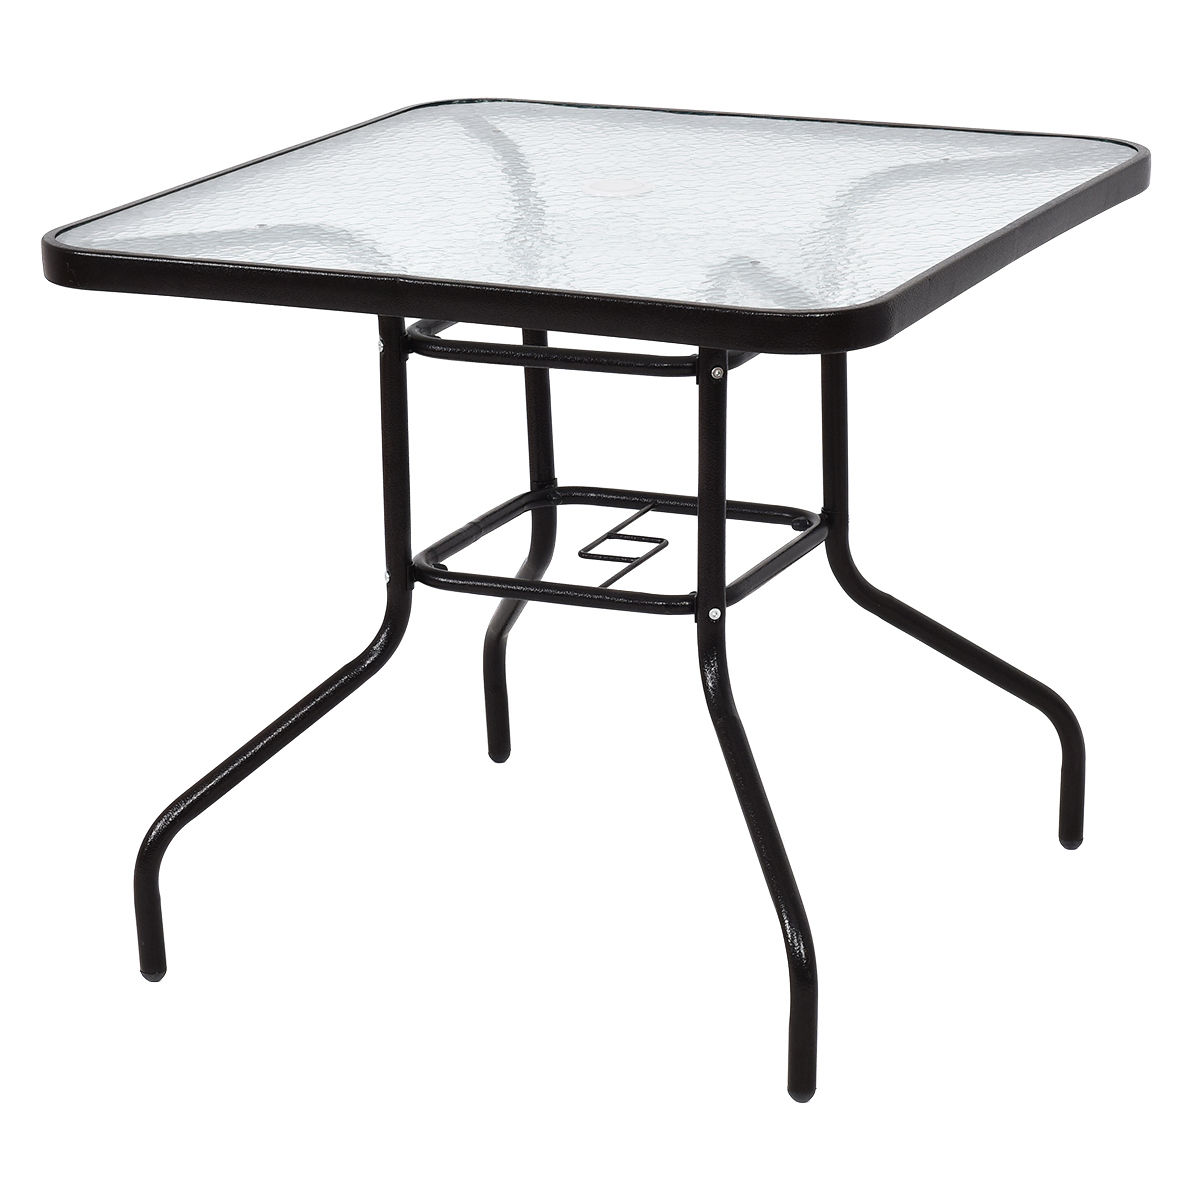 Costway 31 1/2u0027u0027 Patio Square Table Steel Frame Dining Table Patio Furniture